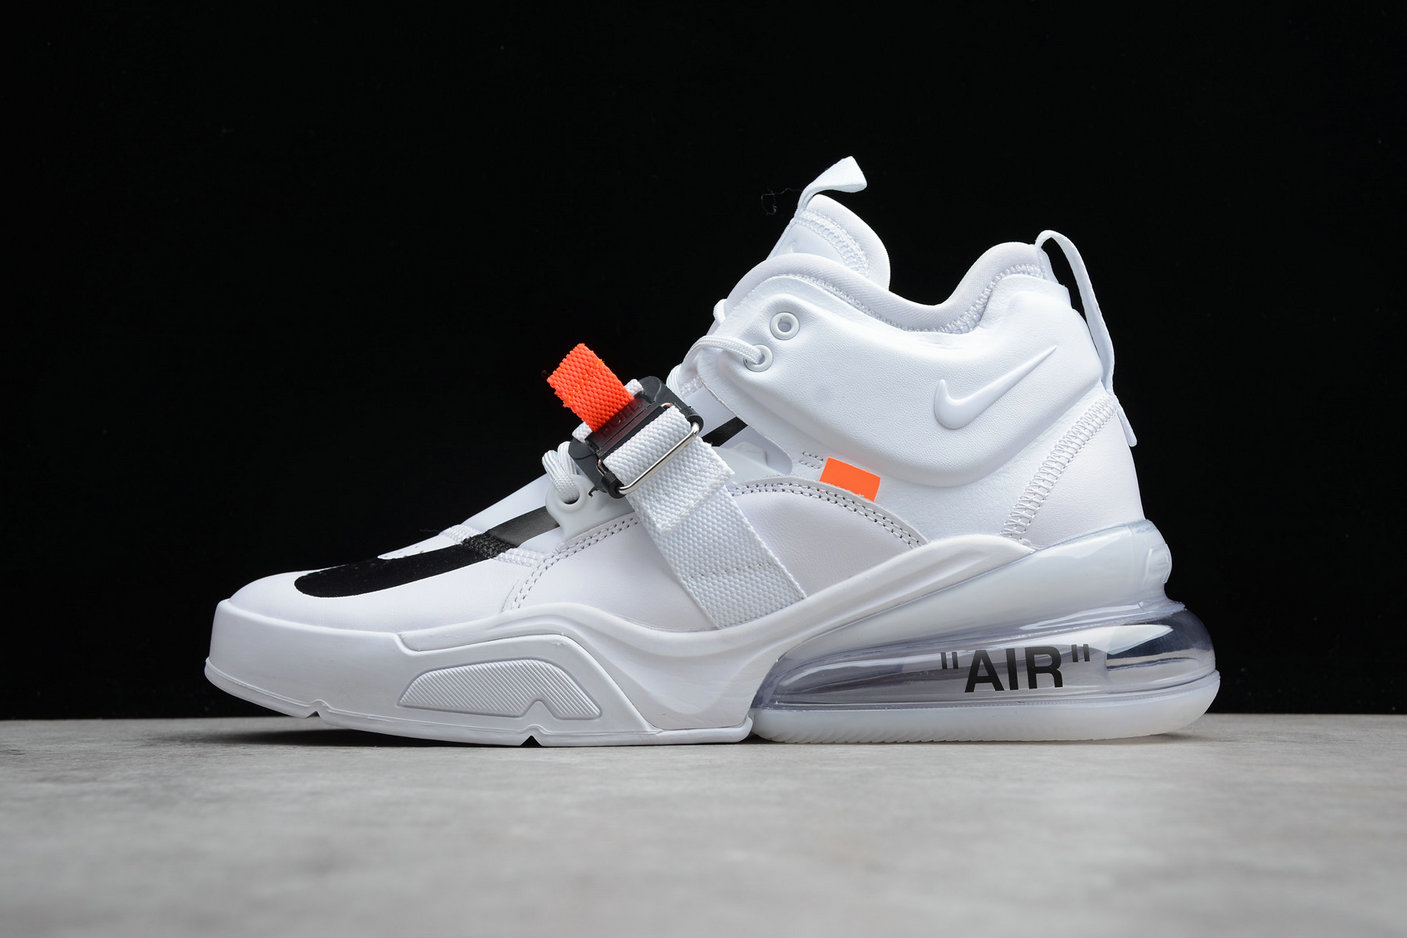 Cheap Nike Air Force 270 AH6772-010 White Black Noir